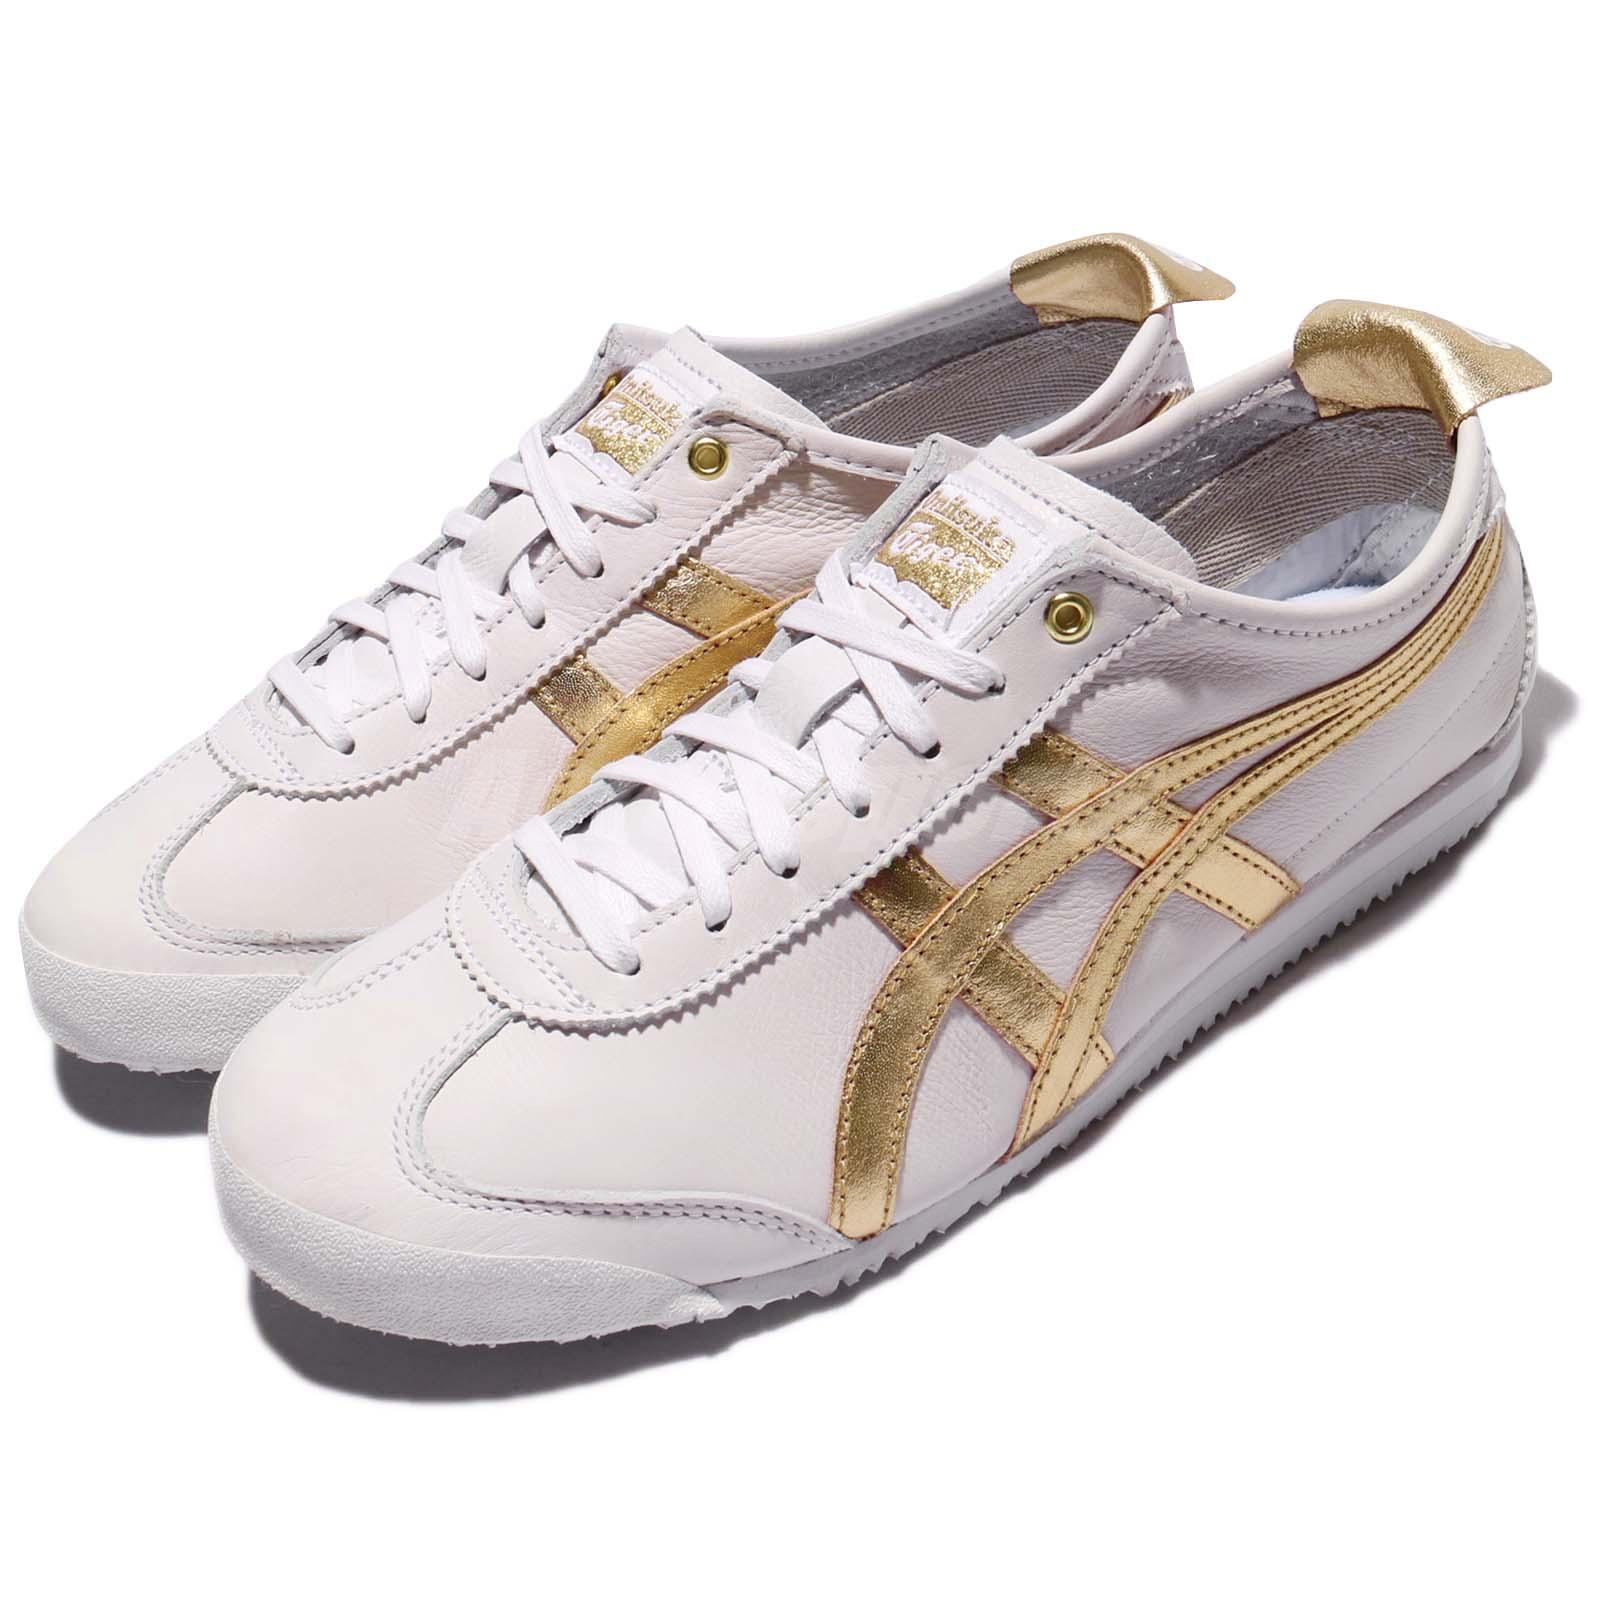 Details about Asics Onitsuka Tiger Mexico 66 White Gold Leather Men Women Vintage D508K-0194